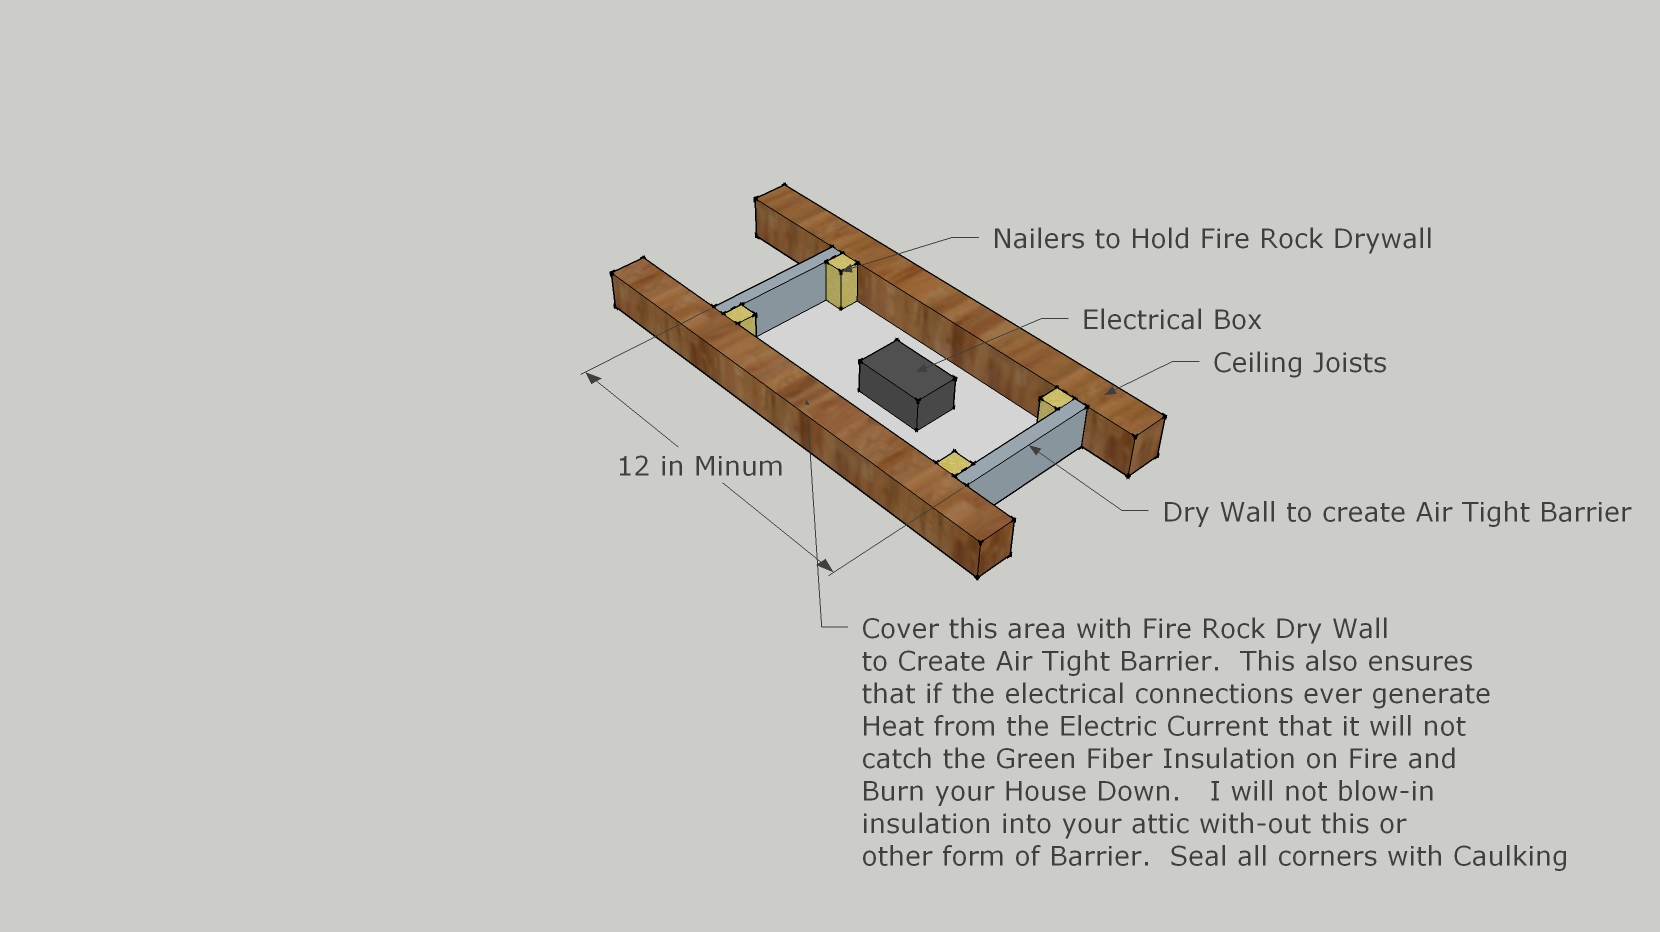 Blocking a Ceiling Joist : eHow